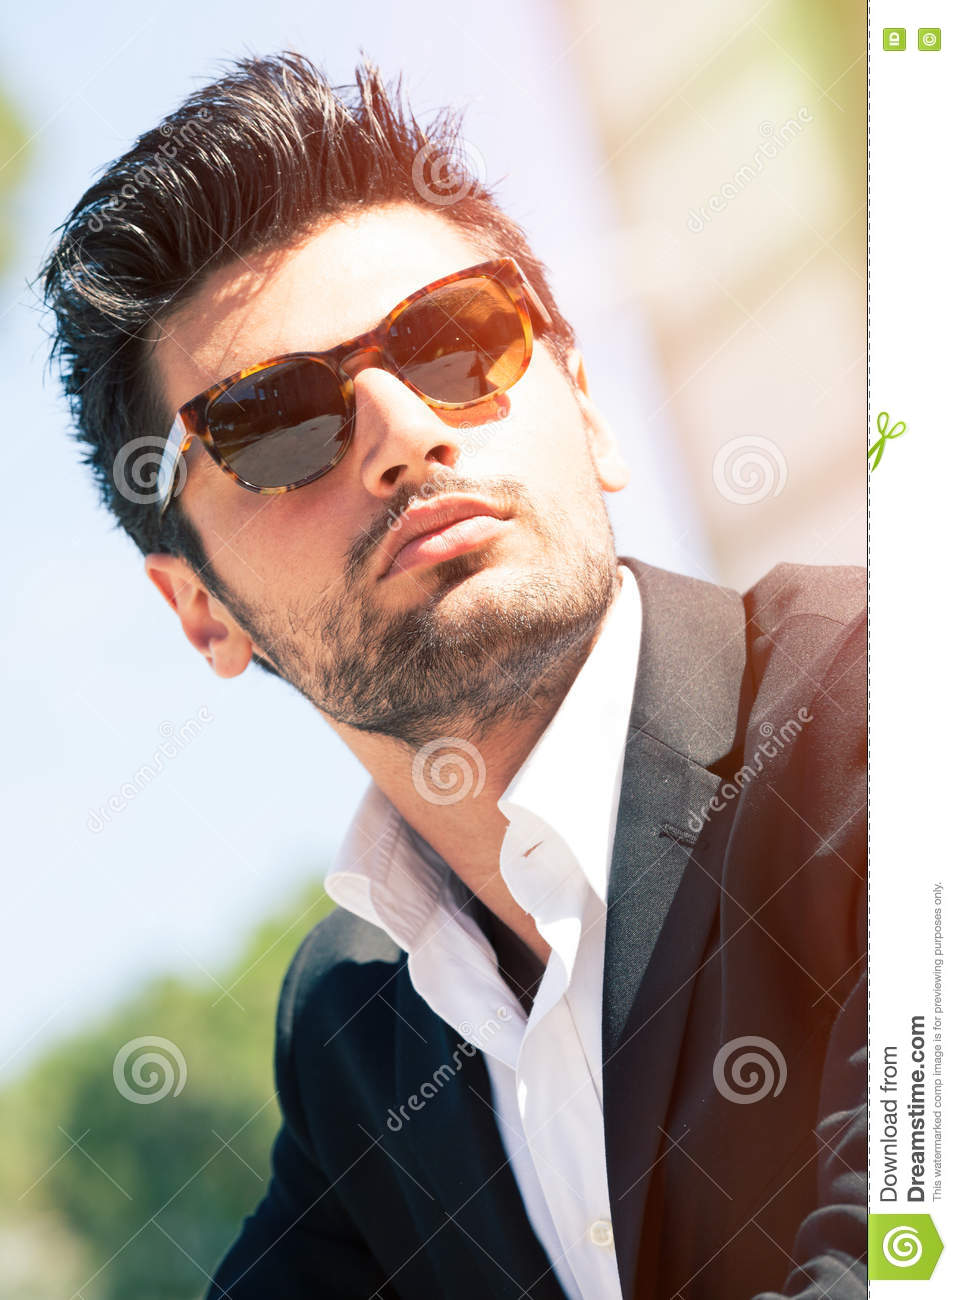 Download Gorgeous Stylish Man. Sunglasses Stock Photo - Image of casual, business: 76152272